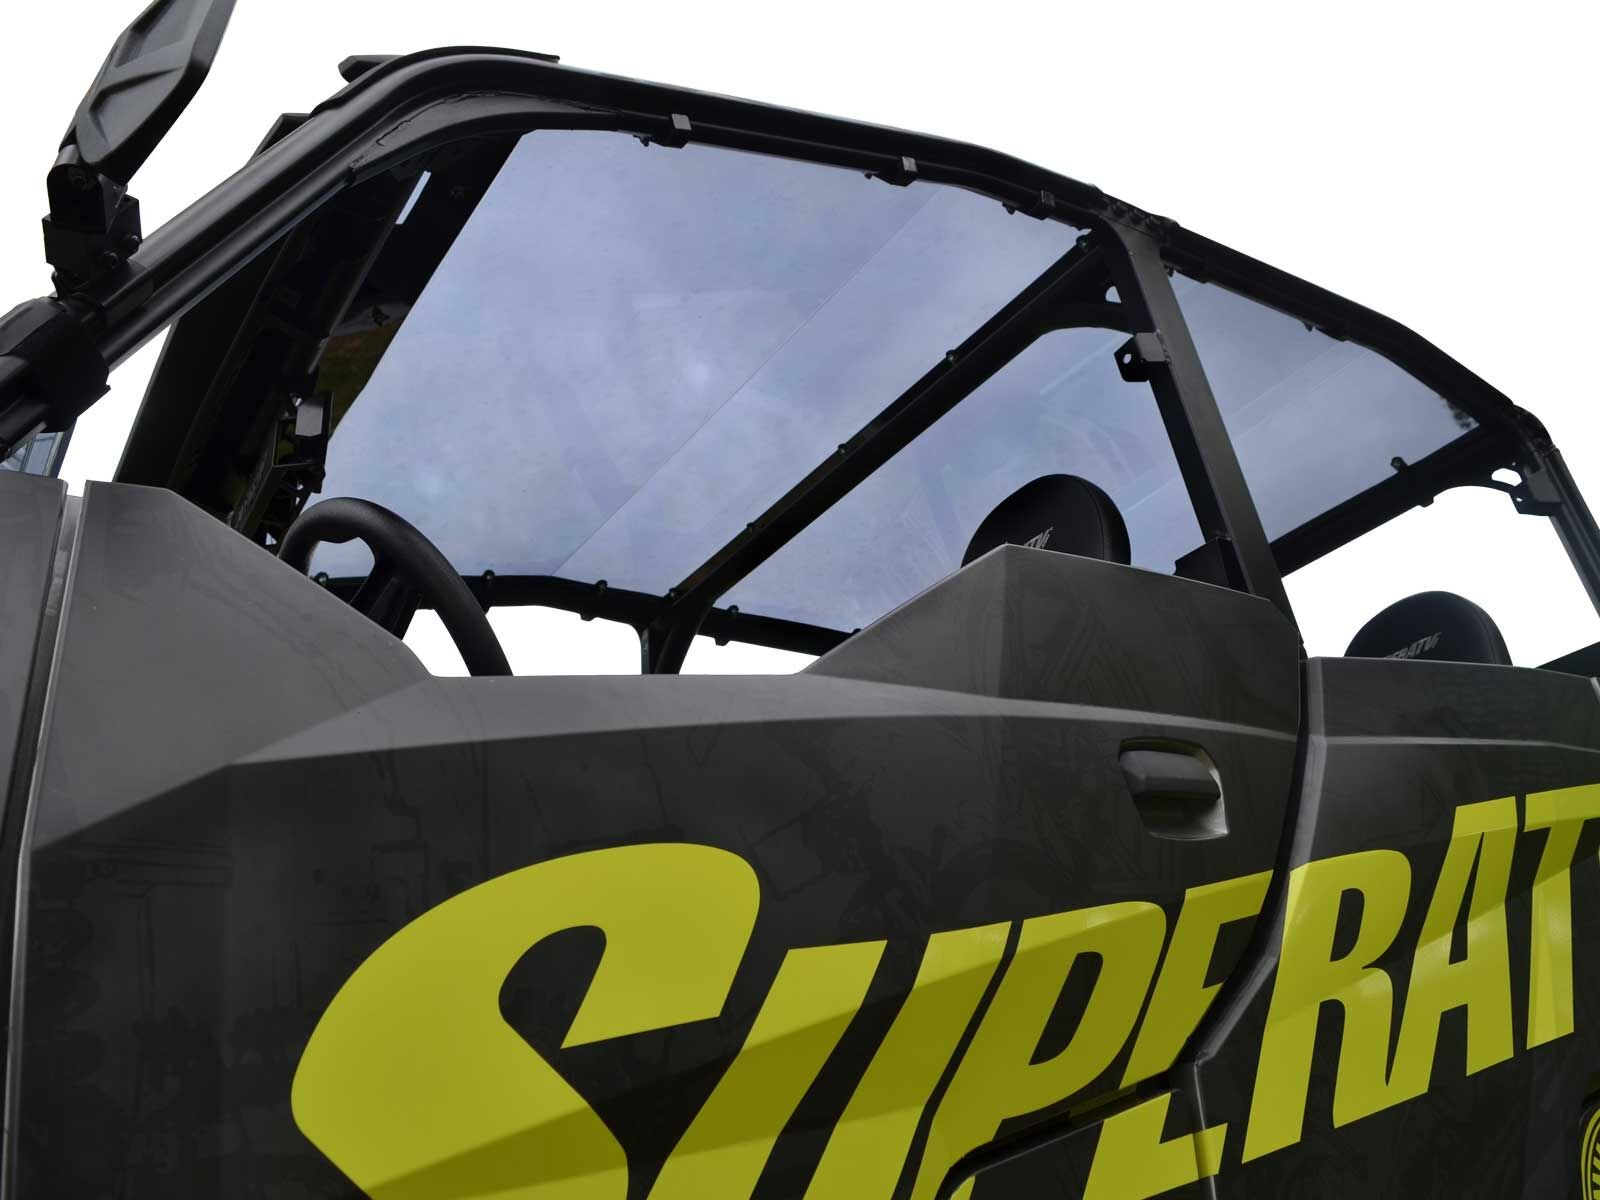 SuperATV Dark Tinted Roof for Polaris General 1000 4 Seater (2017+) - Easy to Install!